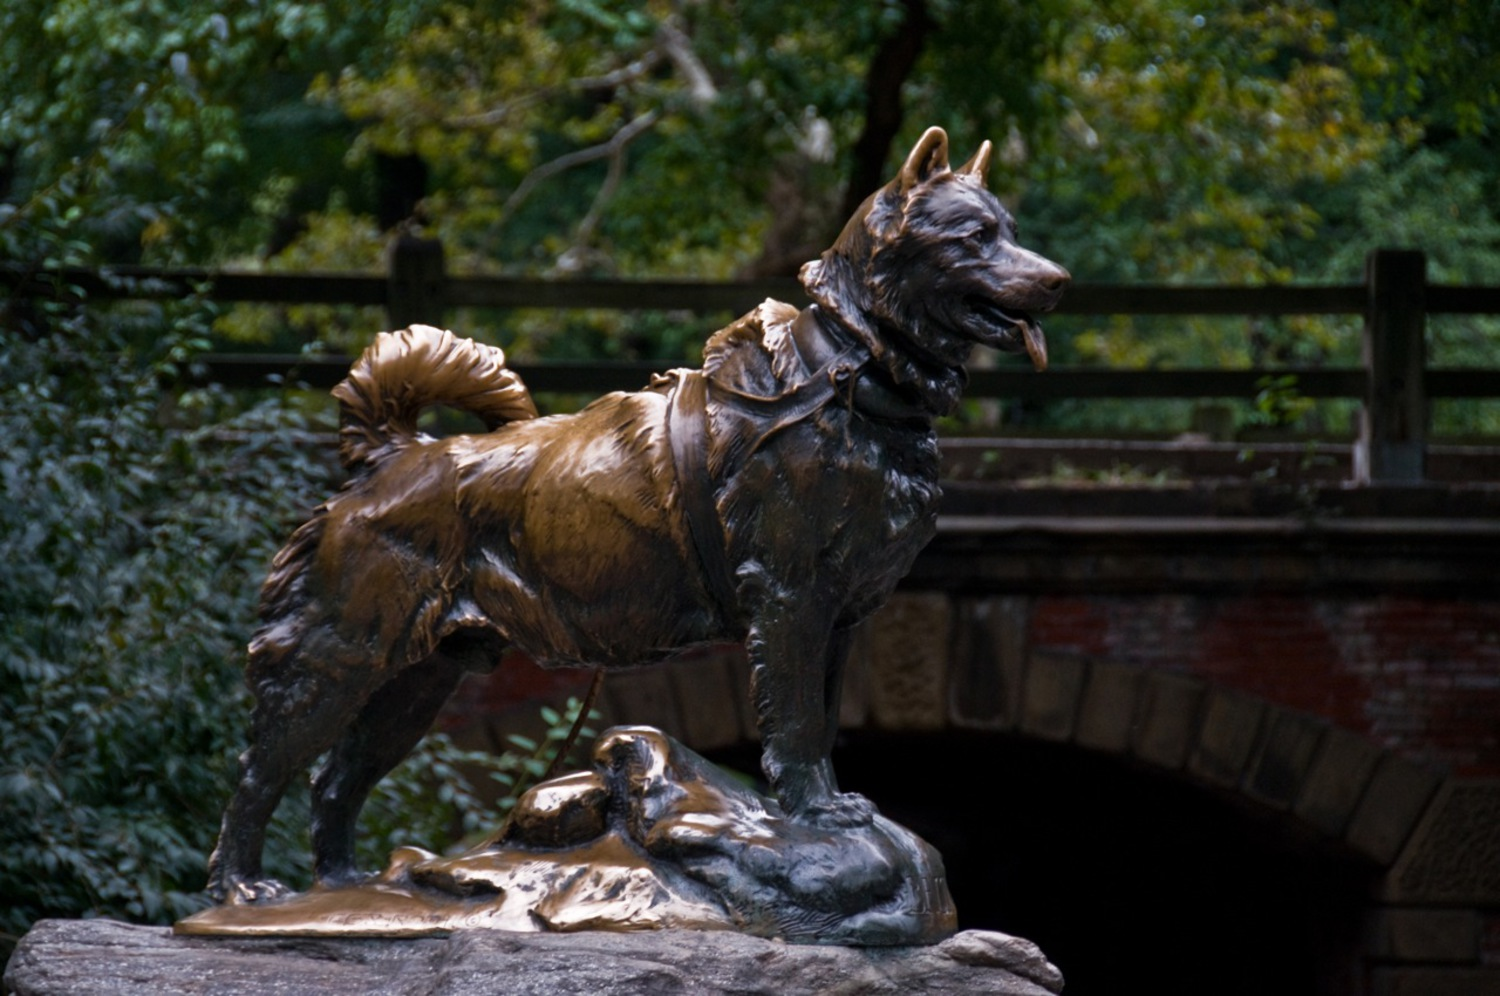 Balto | He is the most amazing dog in the world. I wanted to see this statue since 2000 and i finally made it.